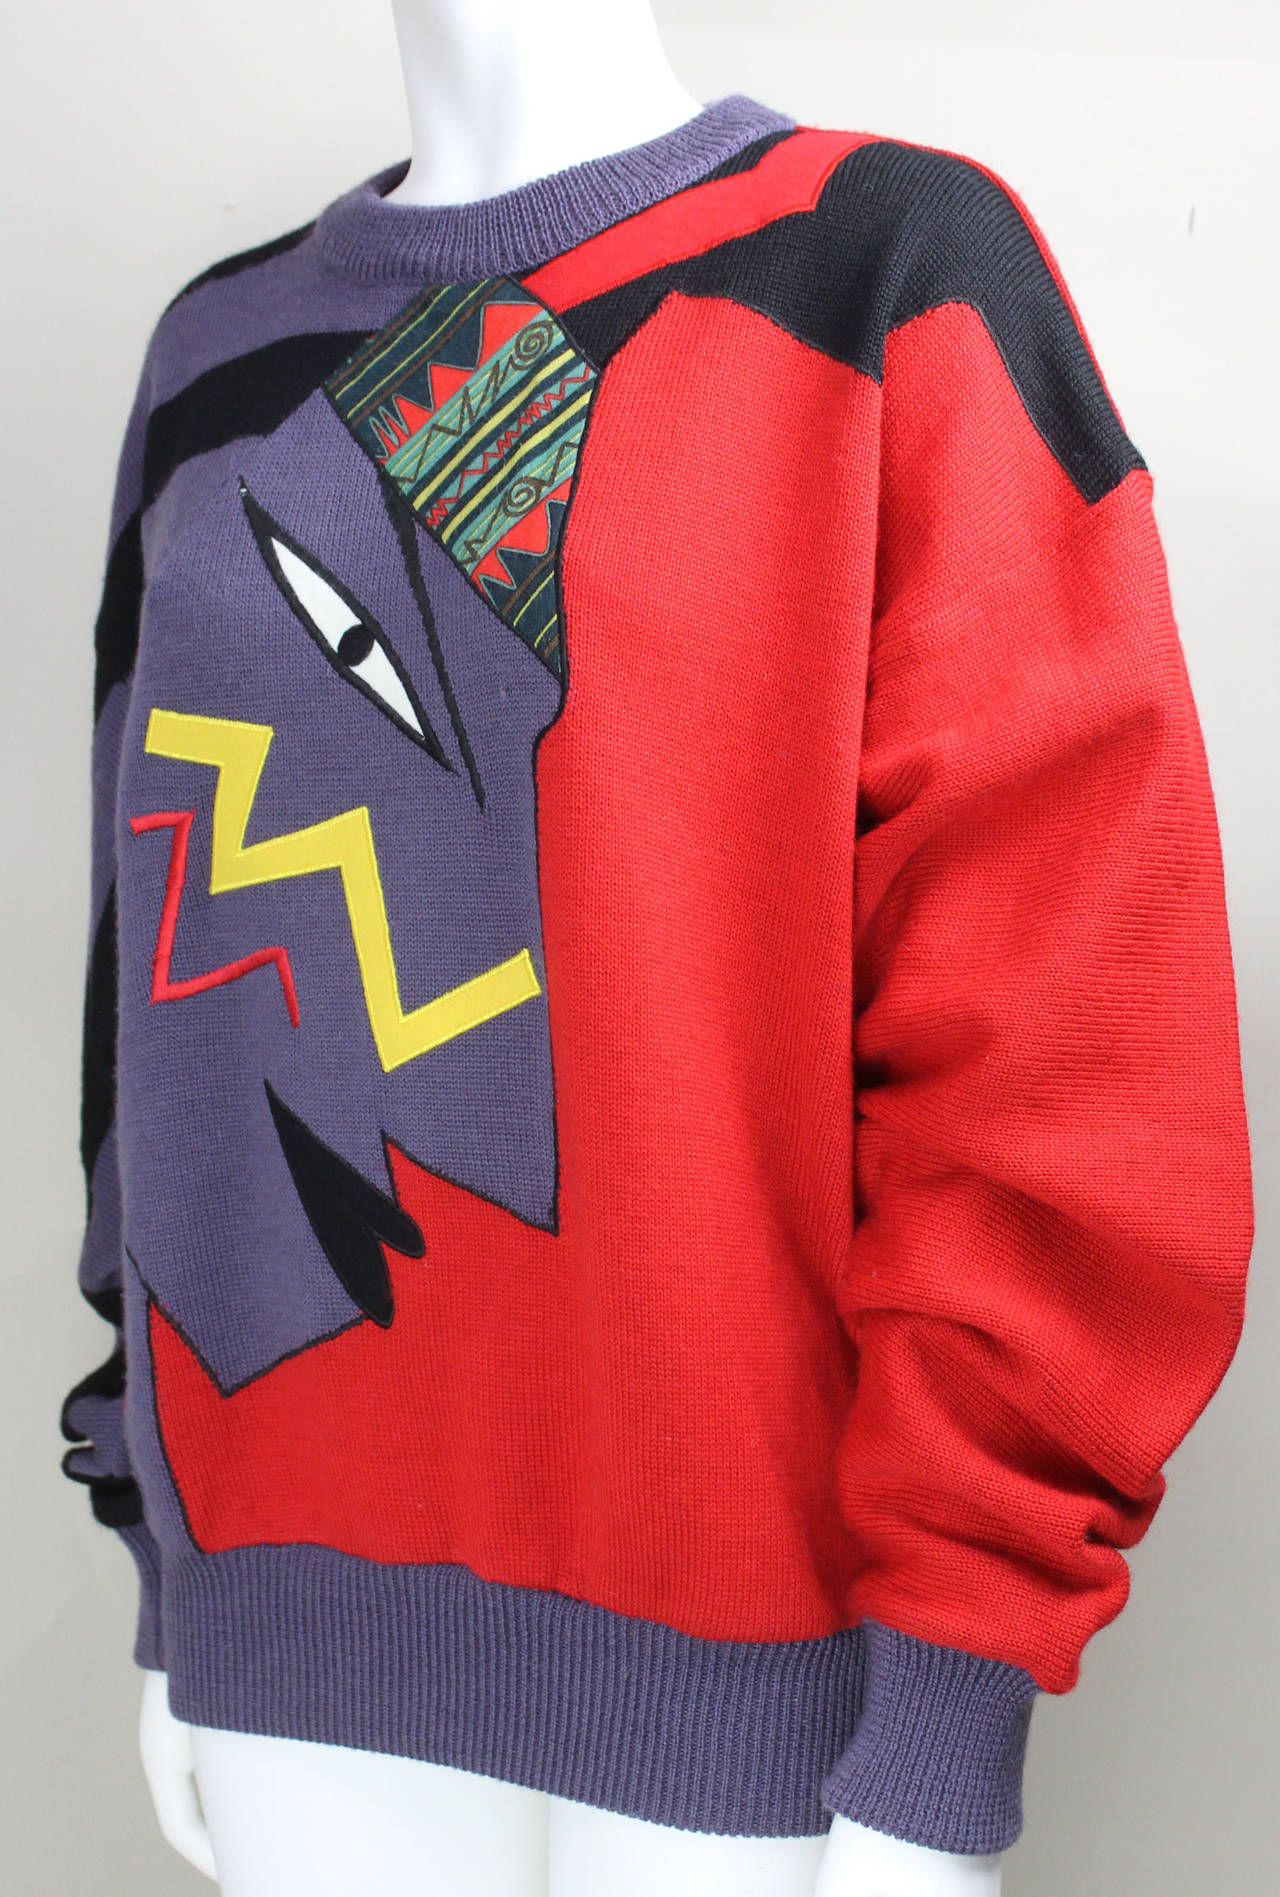 Red and purple knit with a graphic face design. Kansai Yamamoto's innovative, vibrant, wearable art is another example of Yamamoto's contribution to Japanese Contemporary fashion.